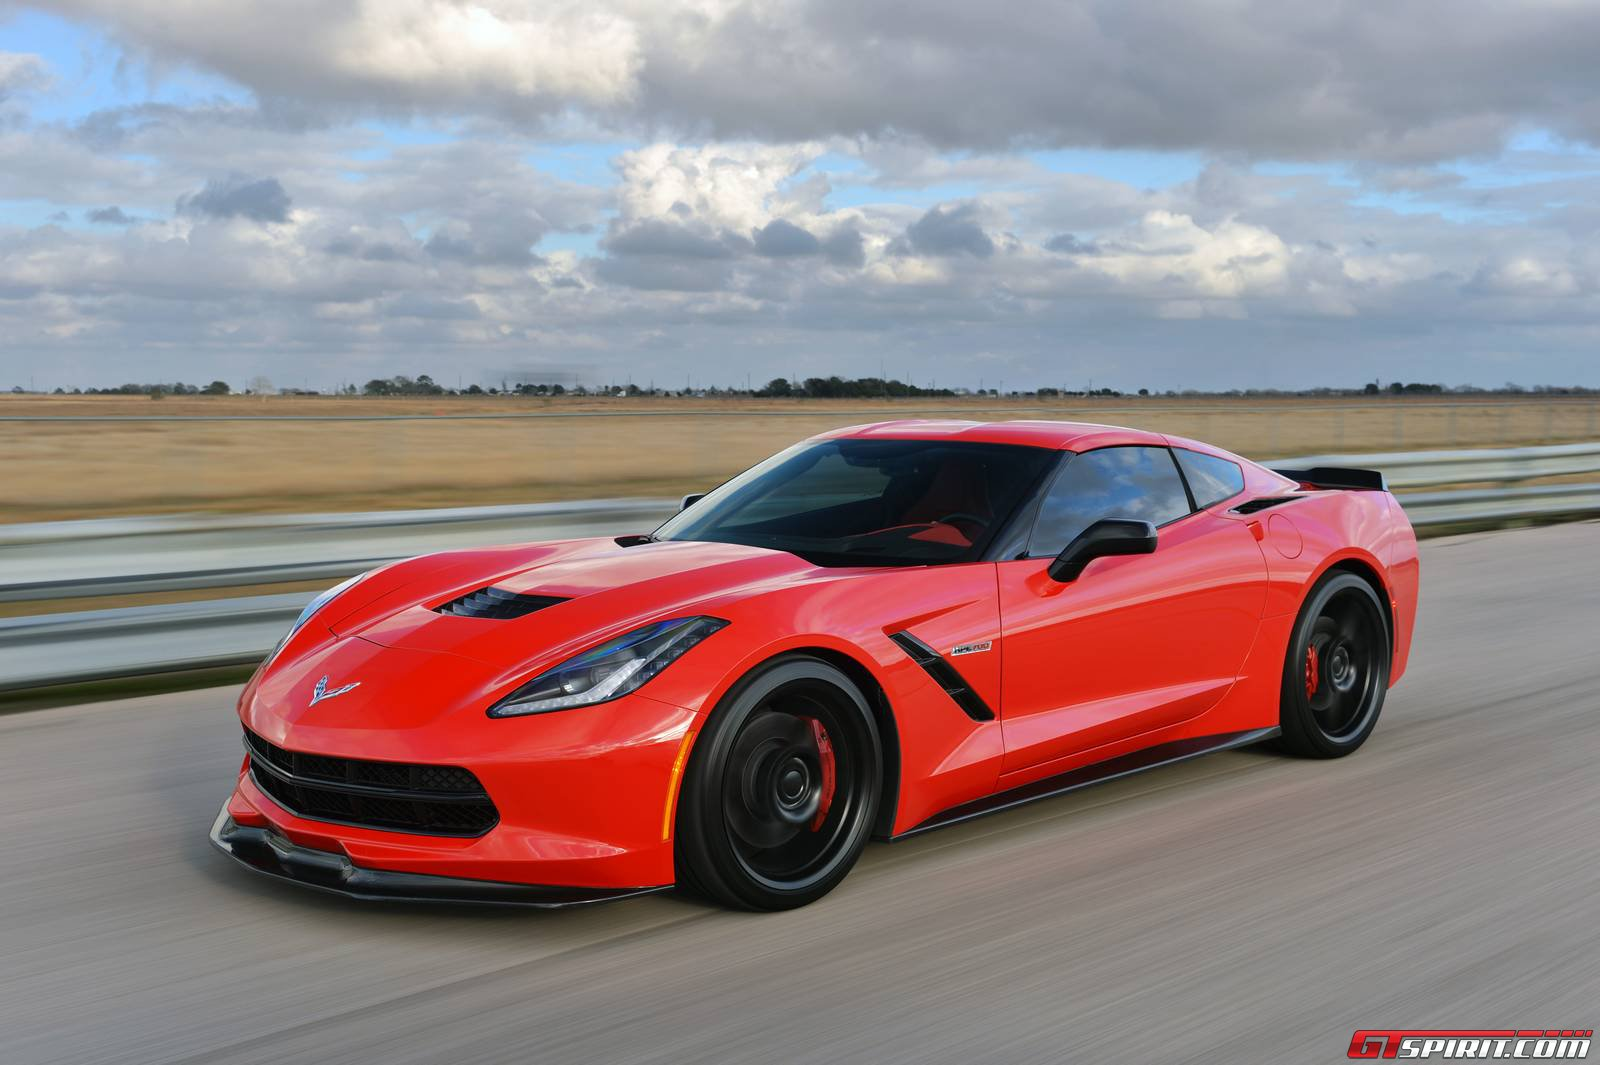 2014 Corvette Stingray For Sale >> Official: 2014 Hennessey HPE700 Twin Turbo Corvette Stingray - GTspirit